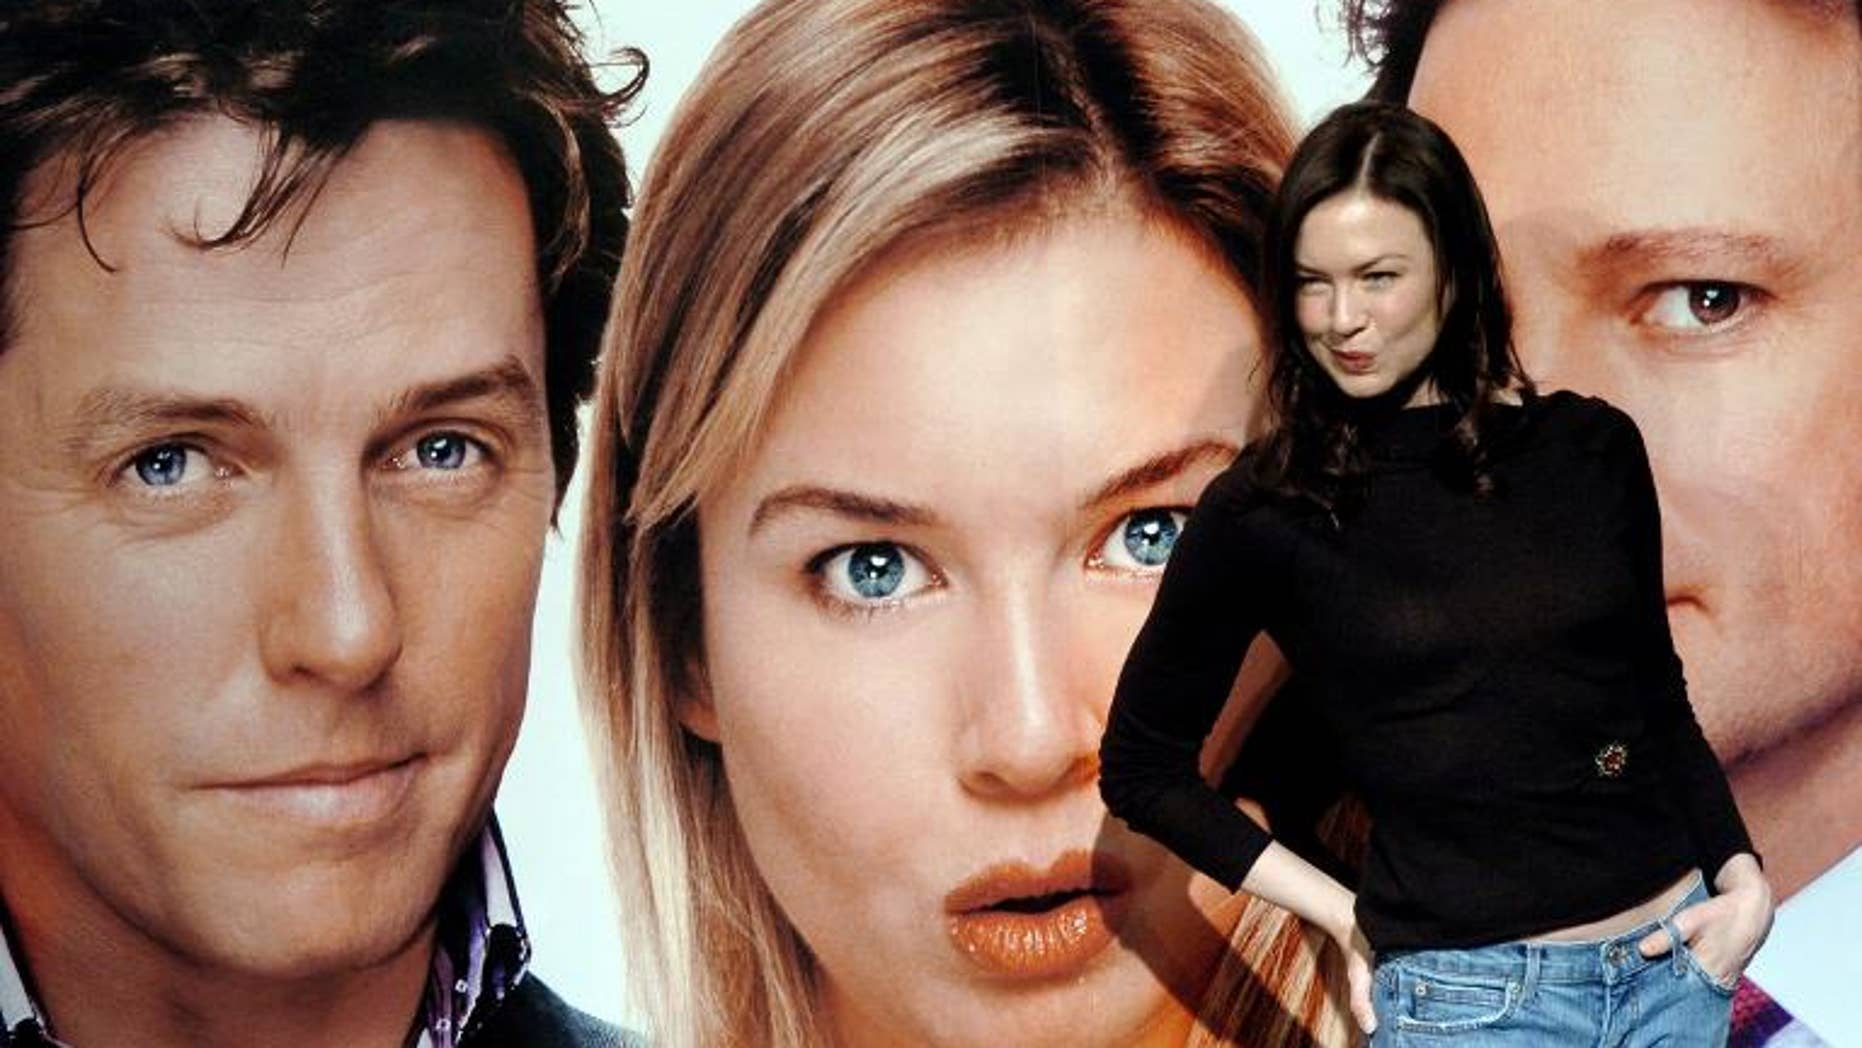 """Actress Renee Zellweger poses in front of a poster for filme """" Bridget Jones: The Edge of Reason """" in Taipei, December 3, 2004"""